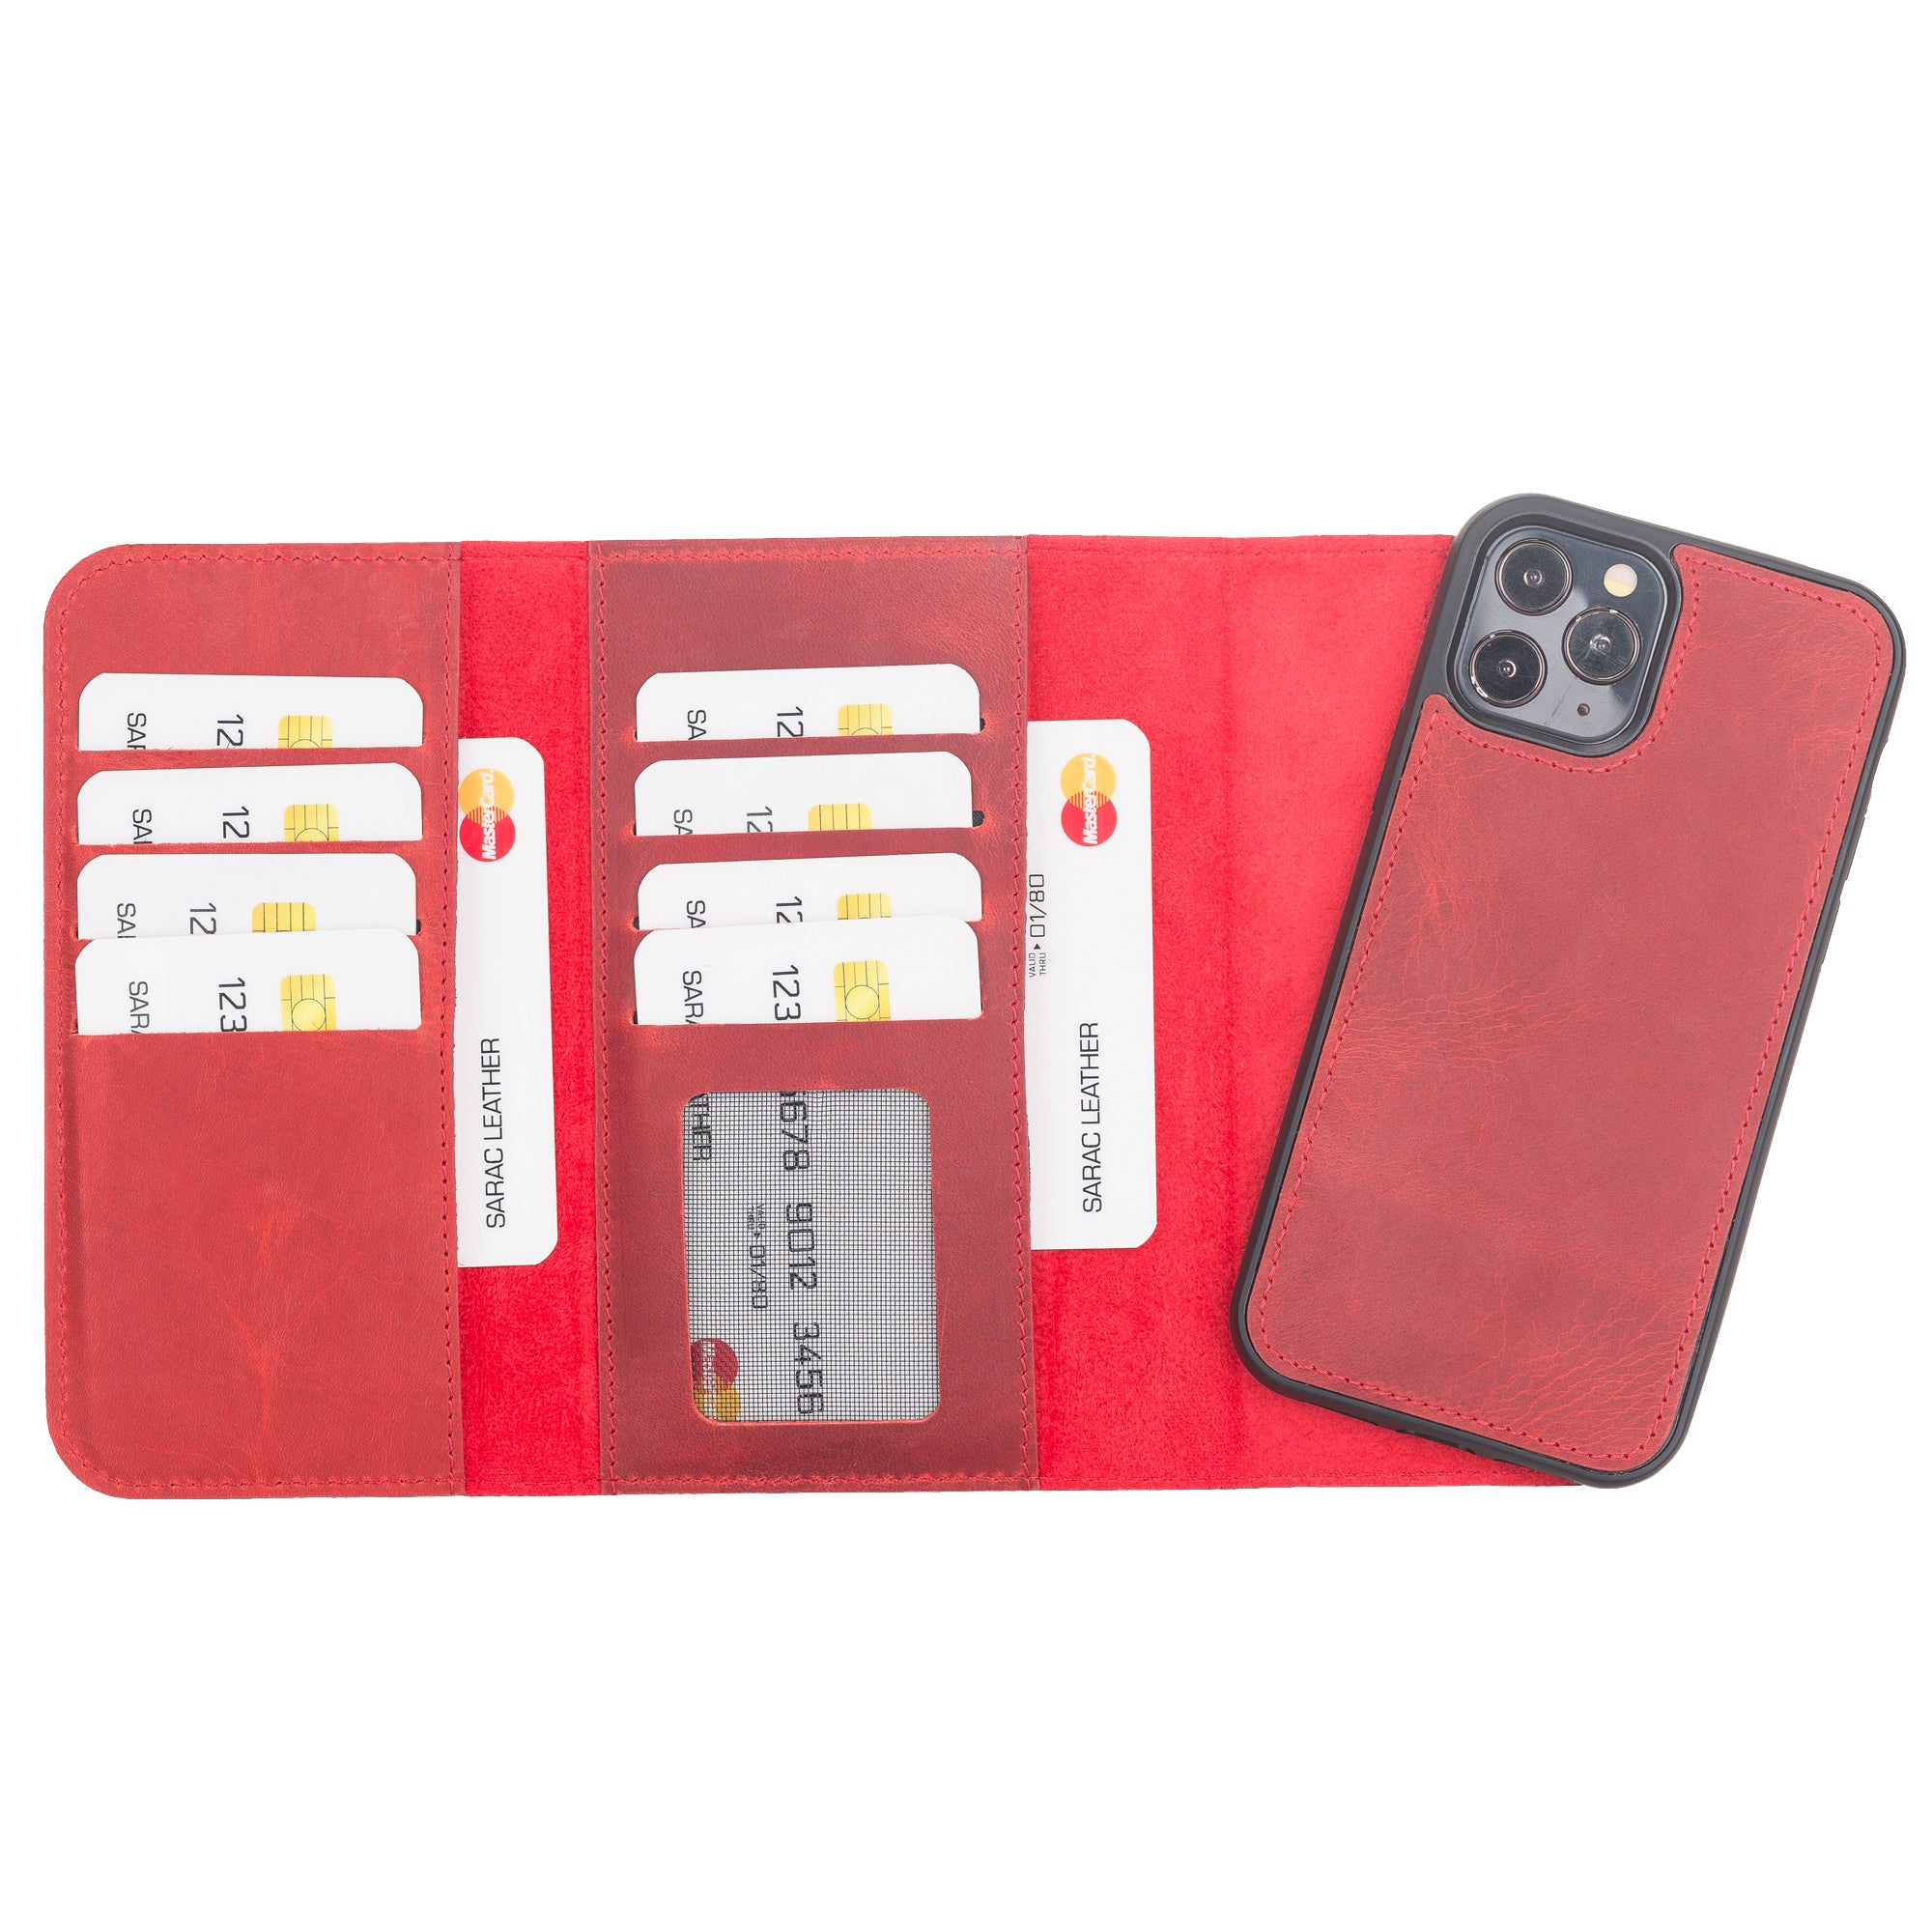 "Santa Magnetic Detachable Leather Wallet Case for iPhone 12 Pro Max (6.7"") - RED - saracleather"